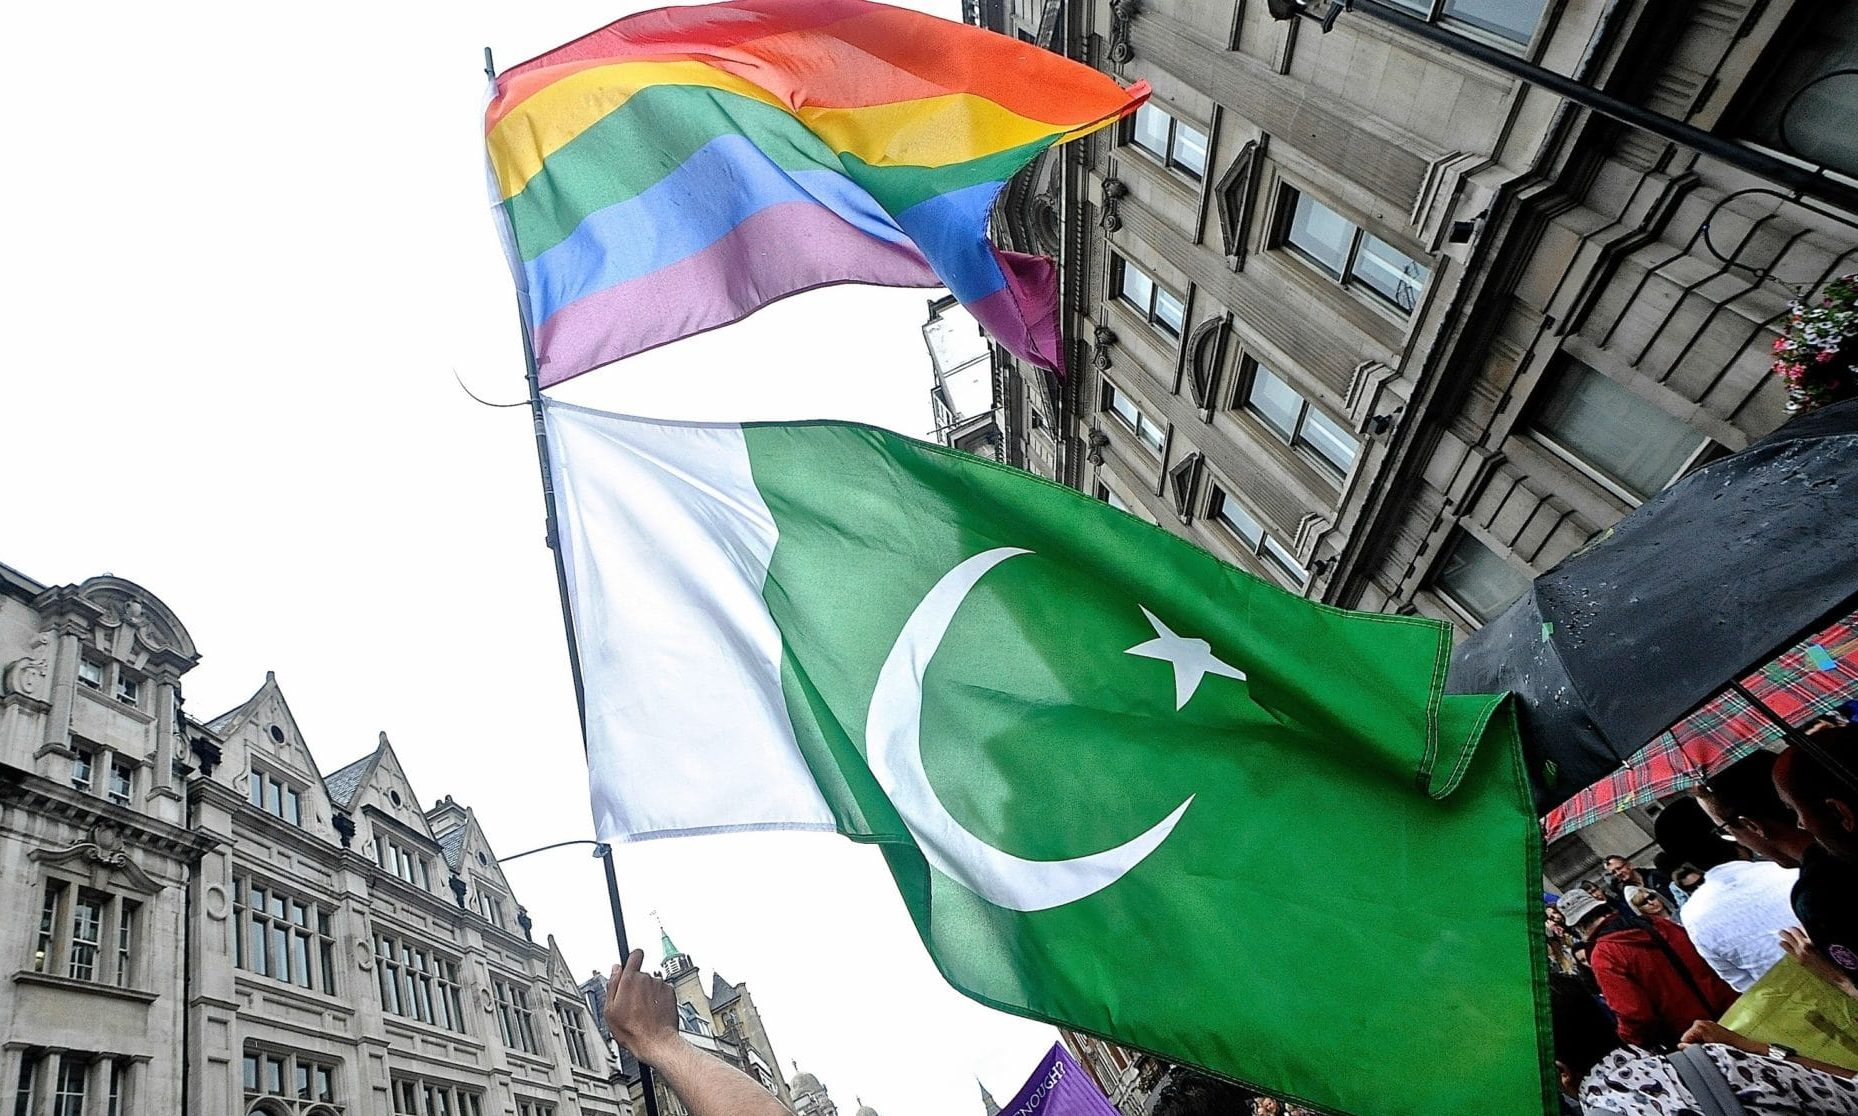 Gay sex is criminalised in Pakistan under a combination of Sharia law principles and colonial law imposed by British rulers.